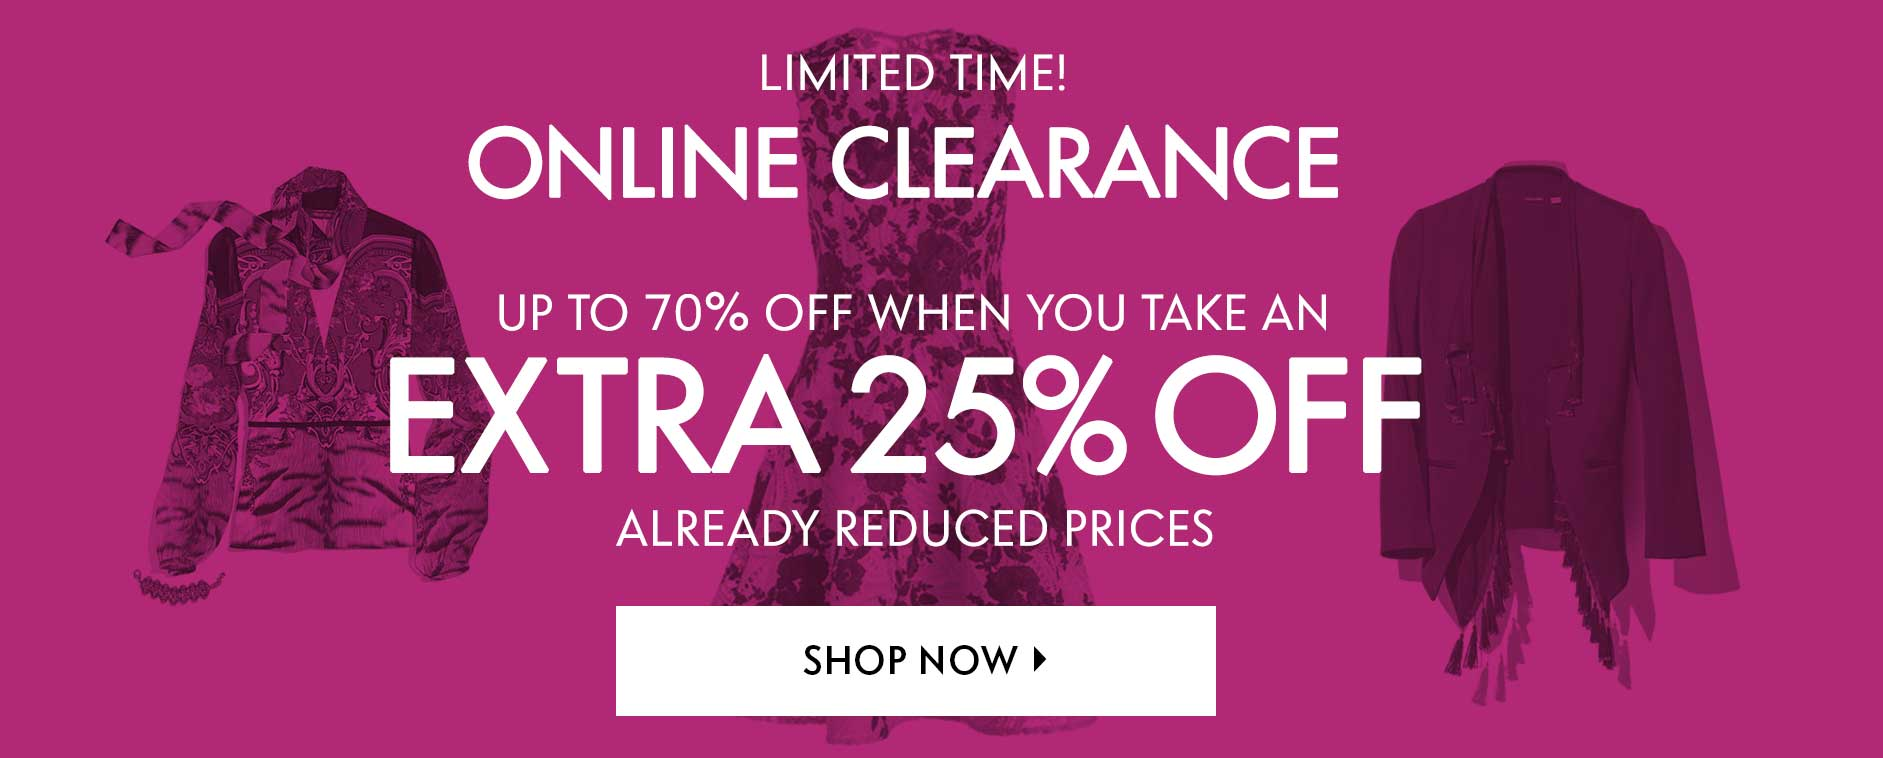 Limited Time! Online Clearance - Up to 70% off when you take an extra 25% off already reduced prices